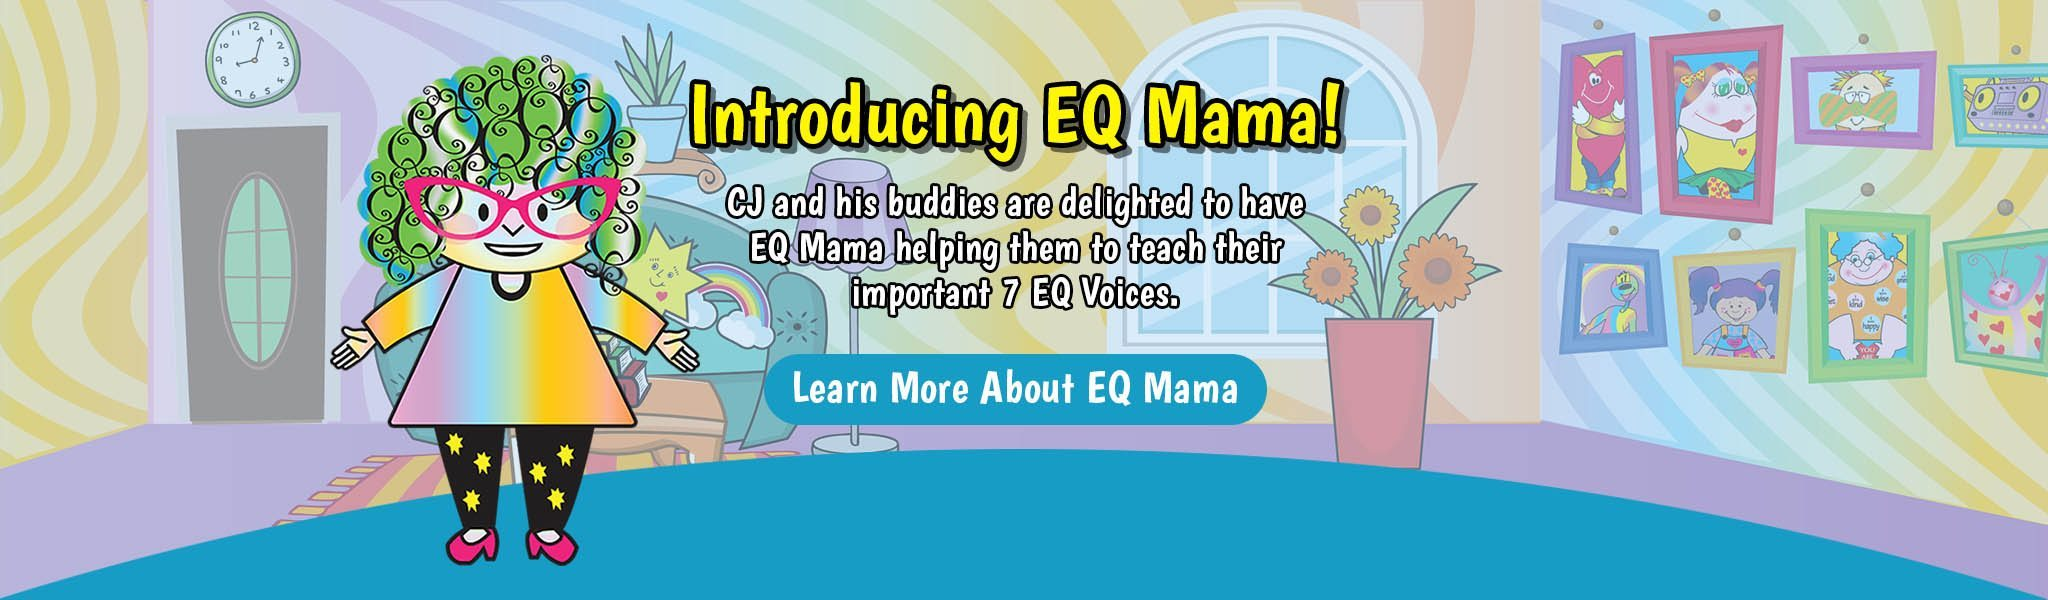 Introducing EQ Mama - Banner - no KS